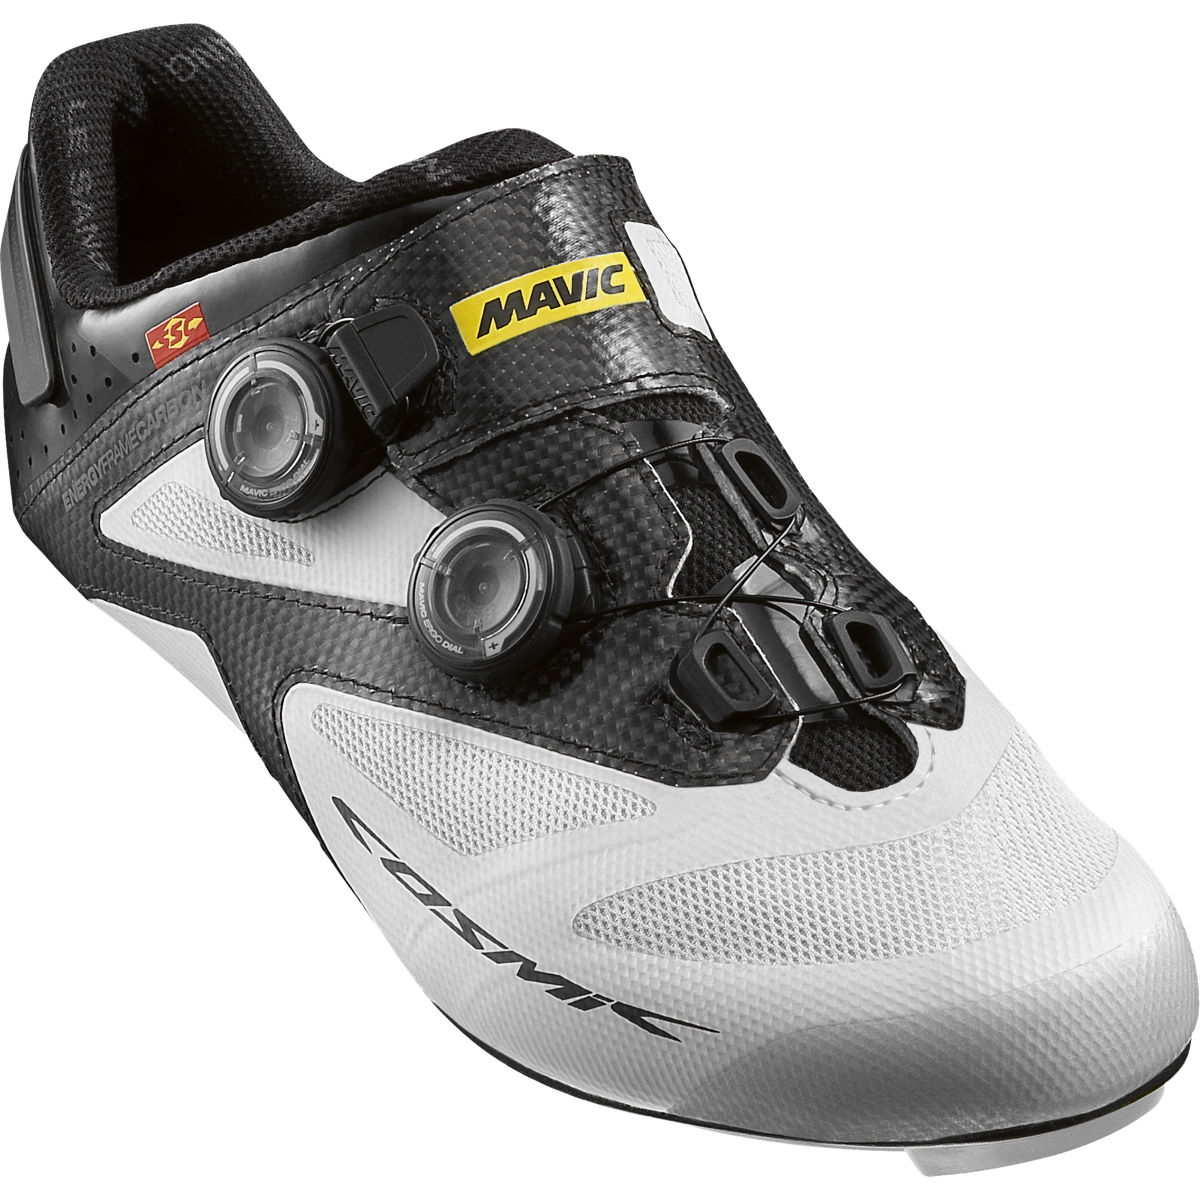 Chaussures de route Mavic Cosmic Ultimate II - 4 Blanc